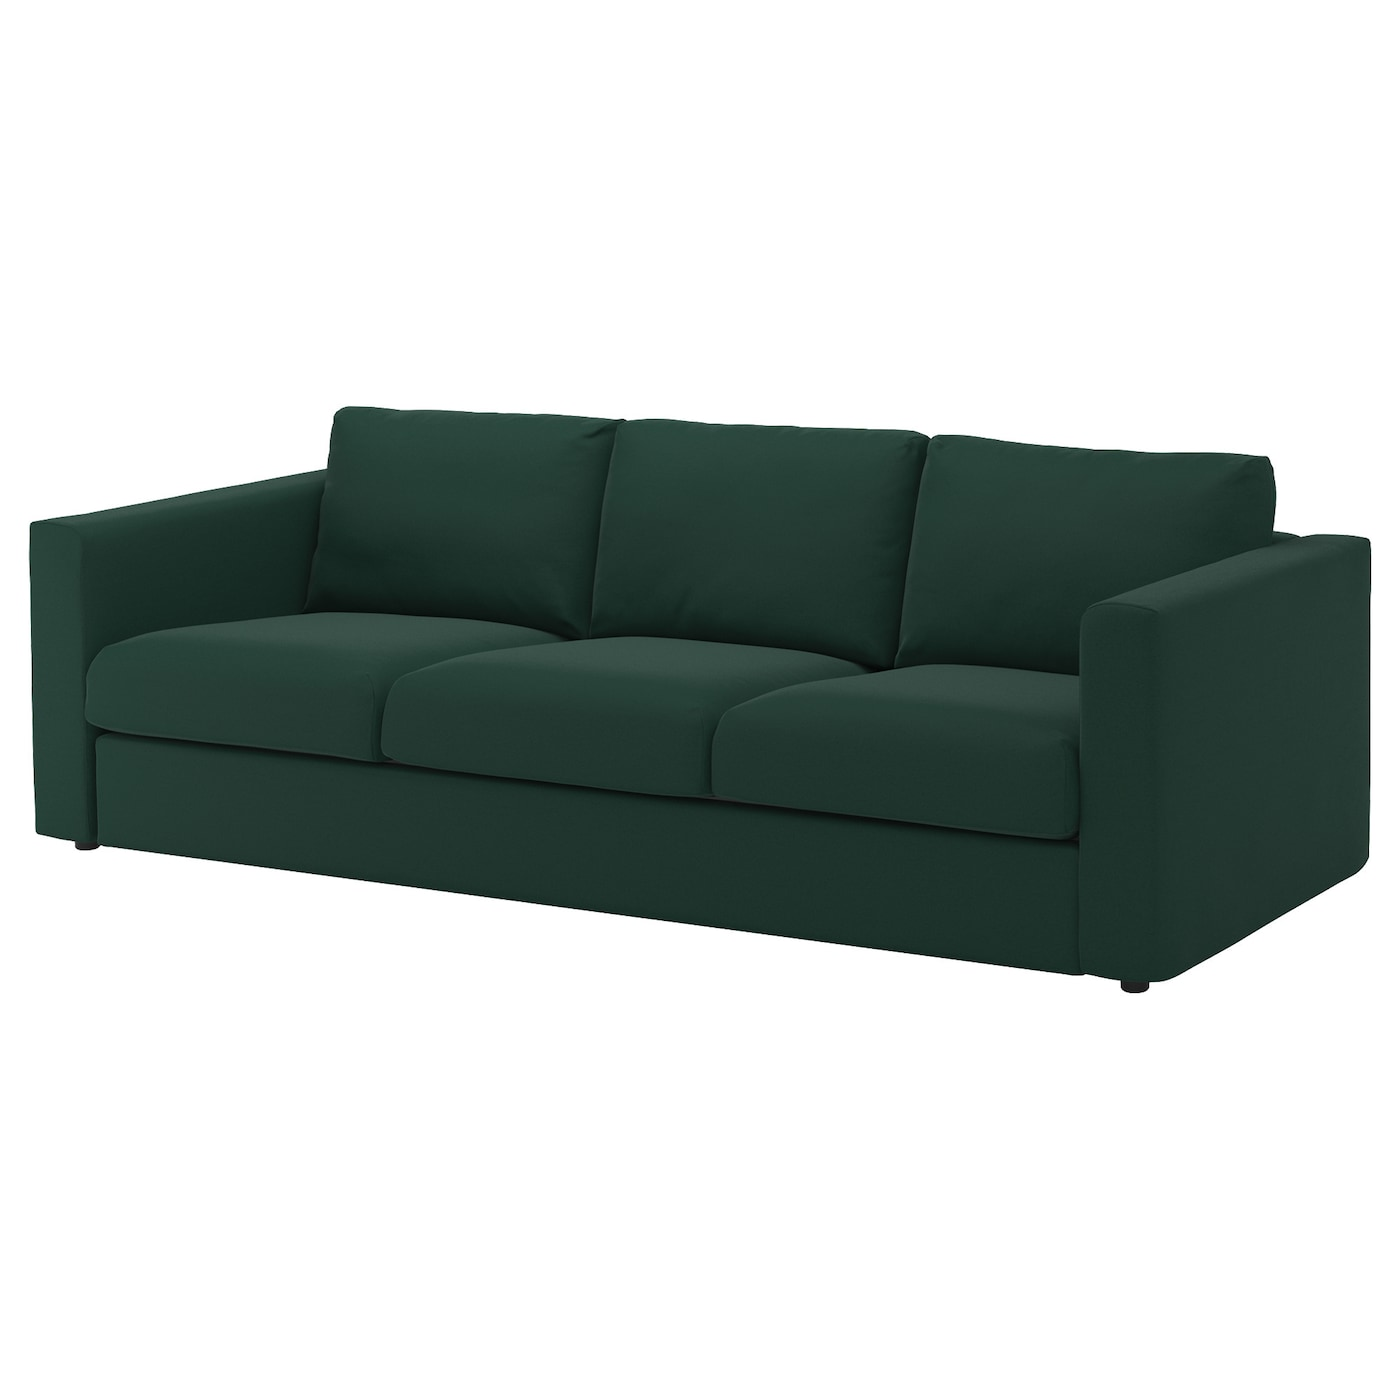 Vimle 3 seat sofa gunnared dark green ikea for Sofa jugendzimmer ikea